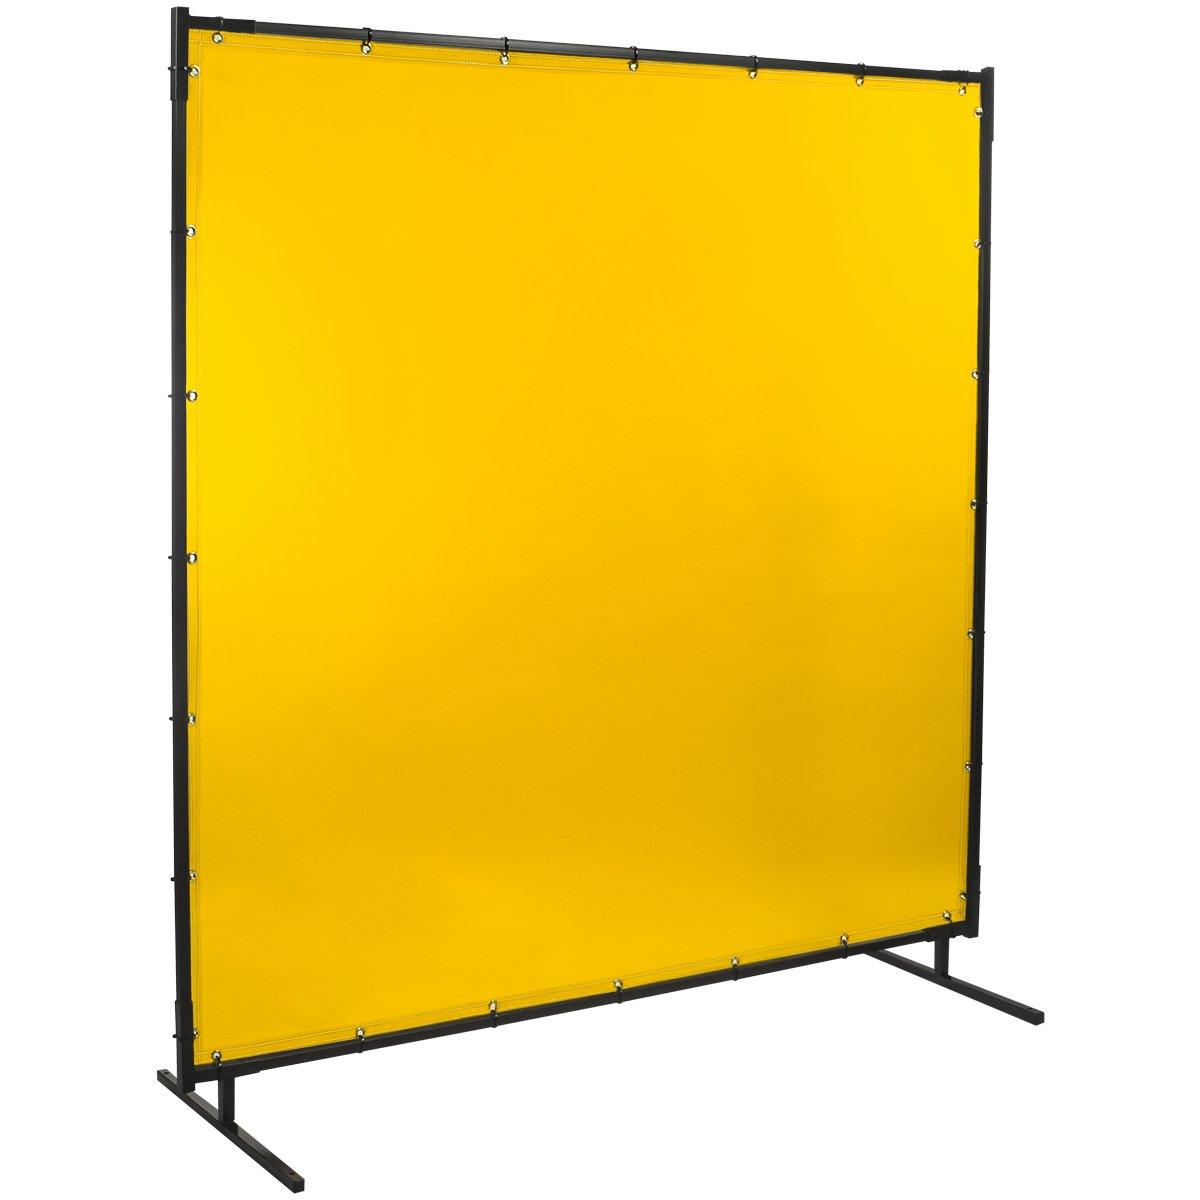 Steiner 534-4X5 Protect-O-Screen Classic Welding Screen with Flame Retardant 14 Mil Tinted Transparent Vinyl Curtain, Yellow, 4' x 5'